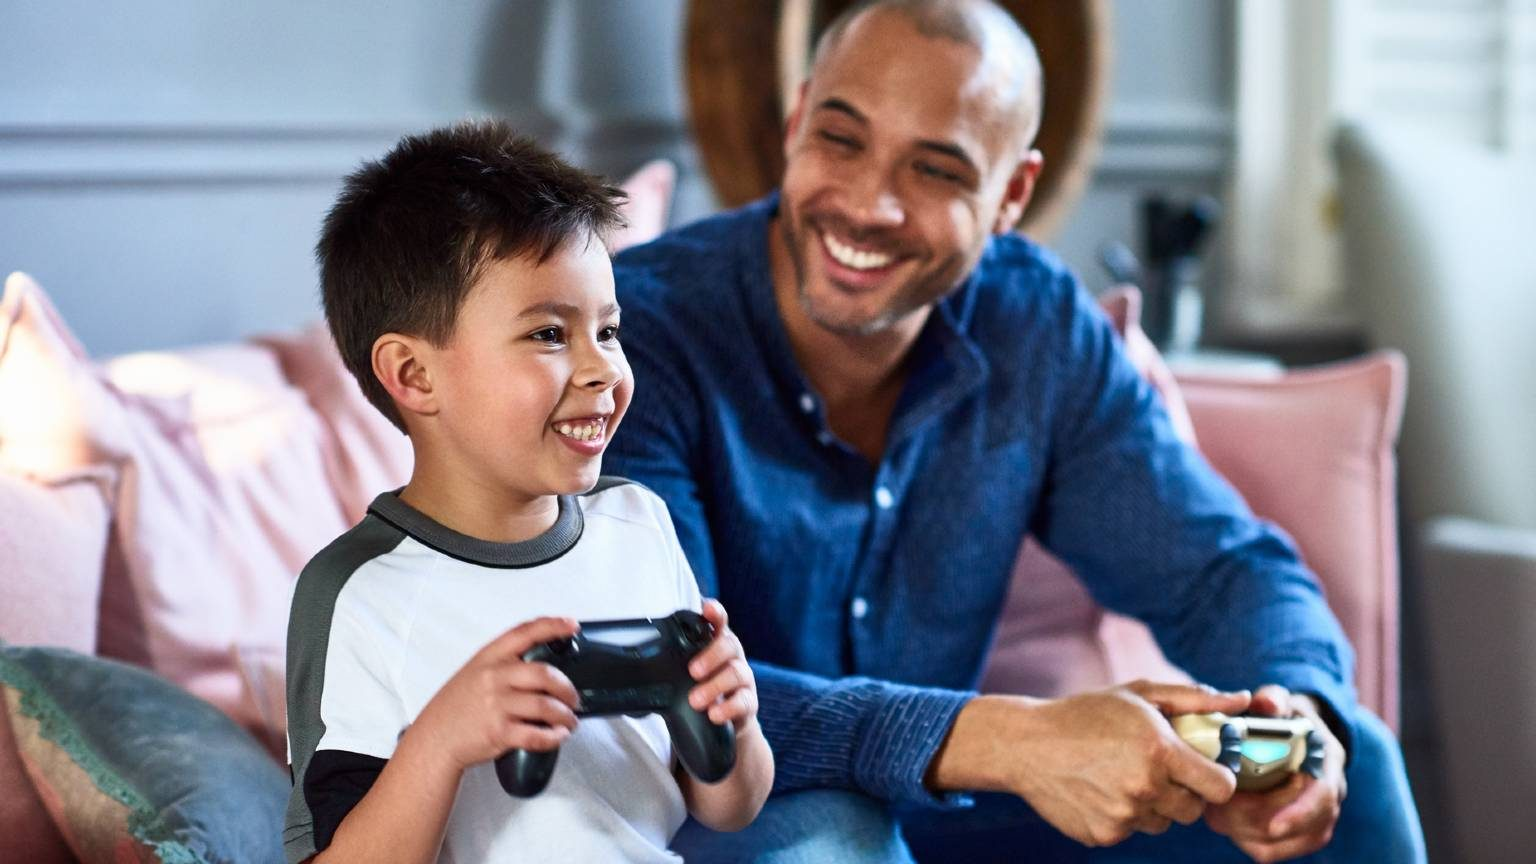 Cheerful father playing games console with son